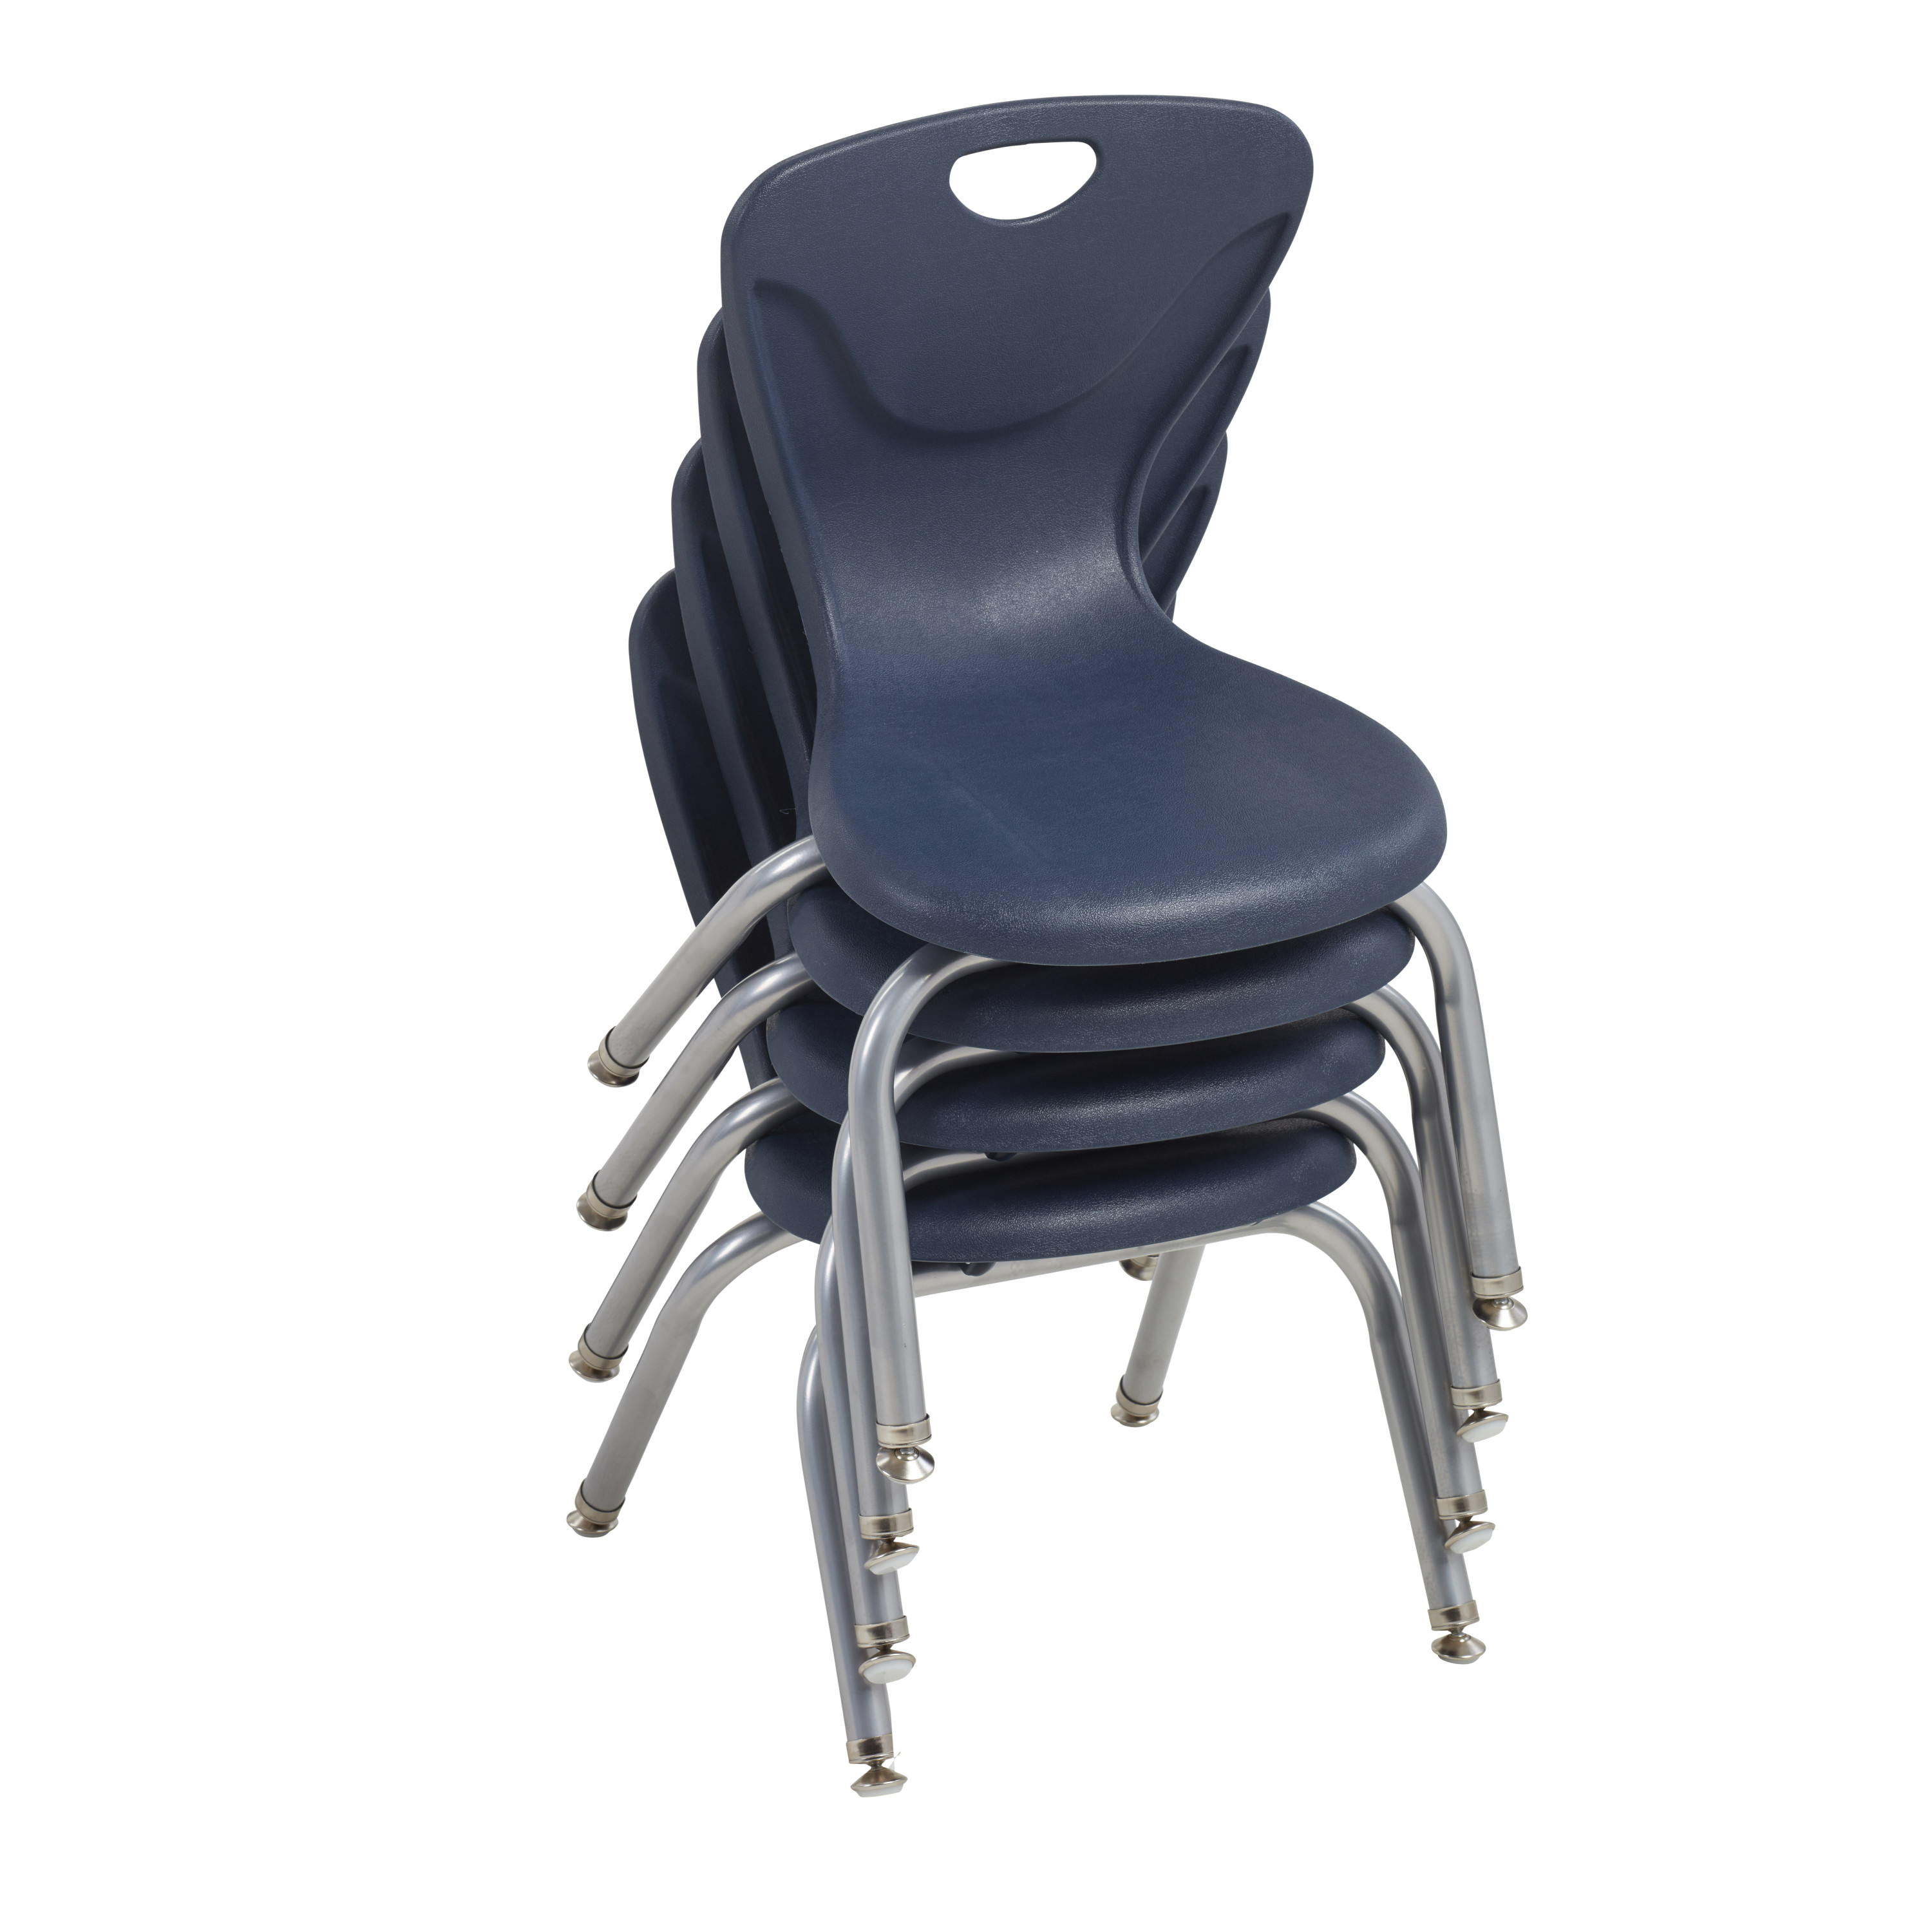 12in Contour Chair - Navy